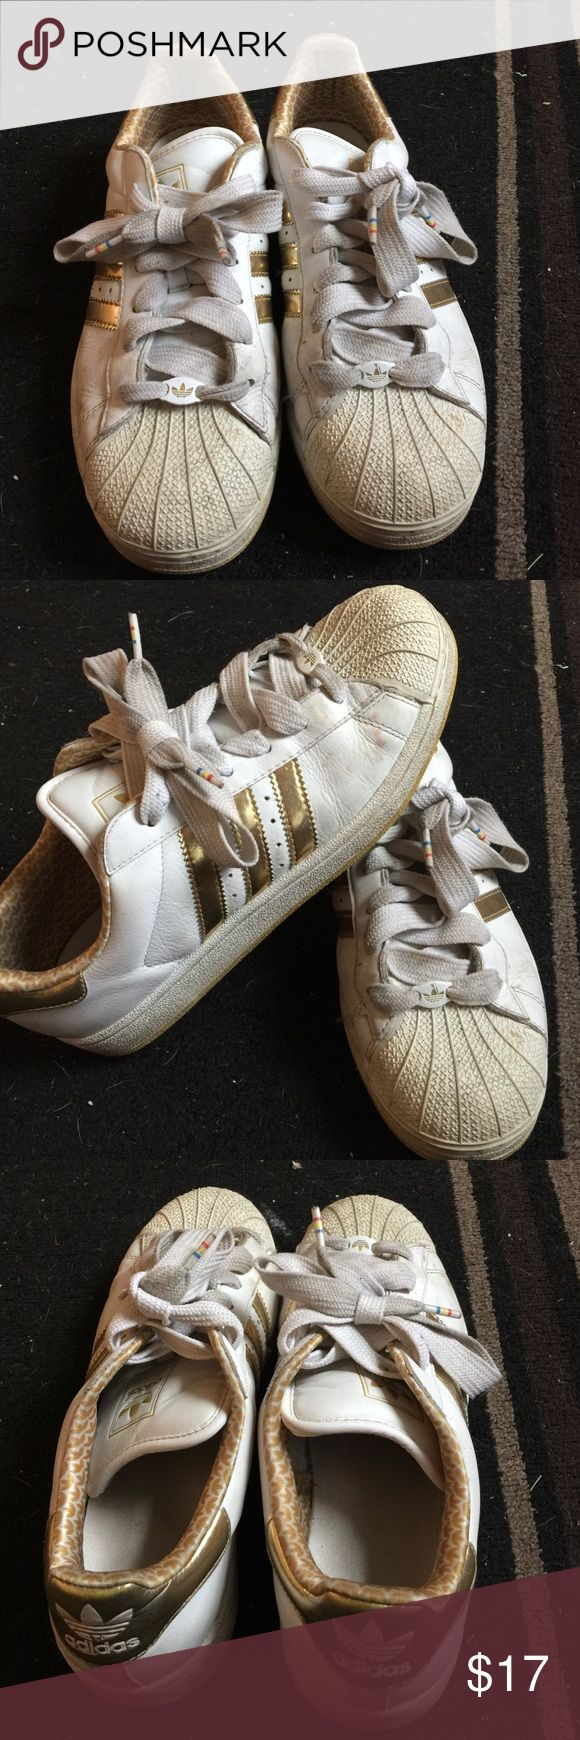 Adidas sneakers super star gold Gold and white!  Super star edition Adidas Shoes Sneakers